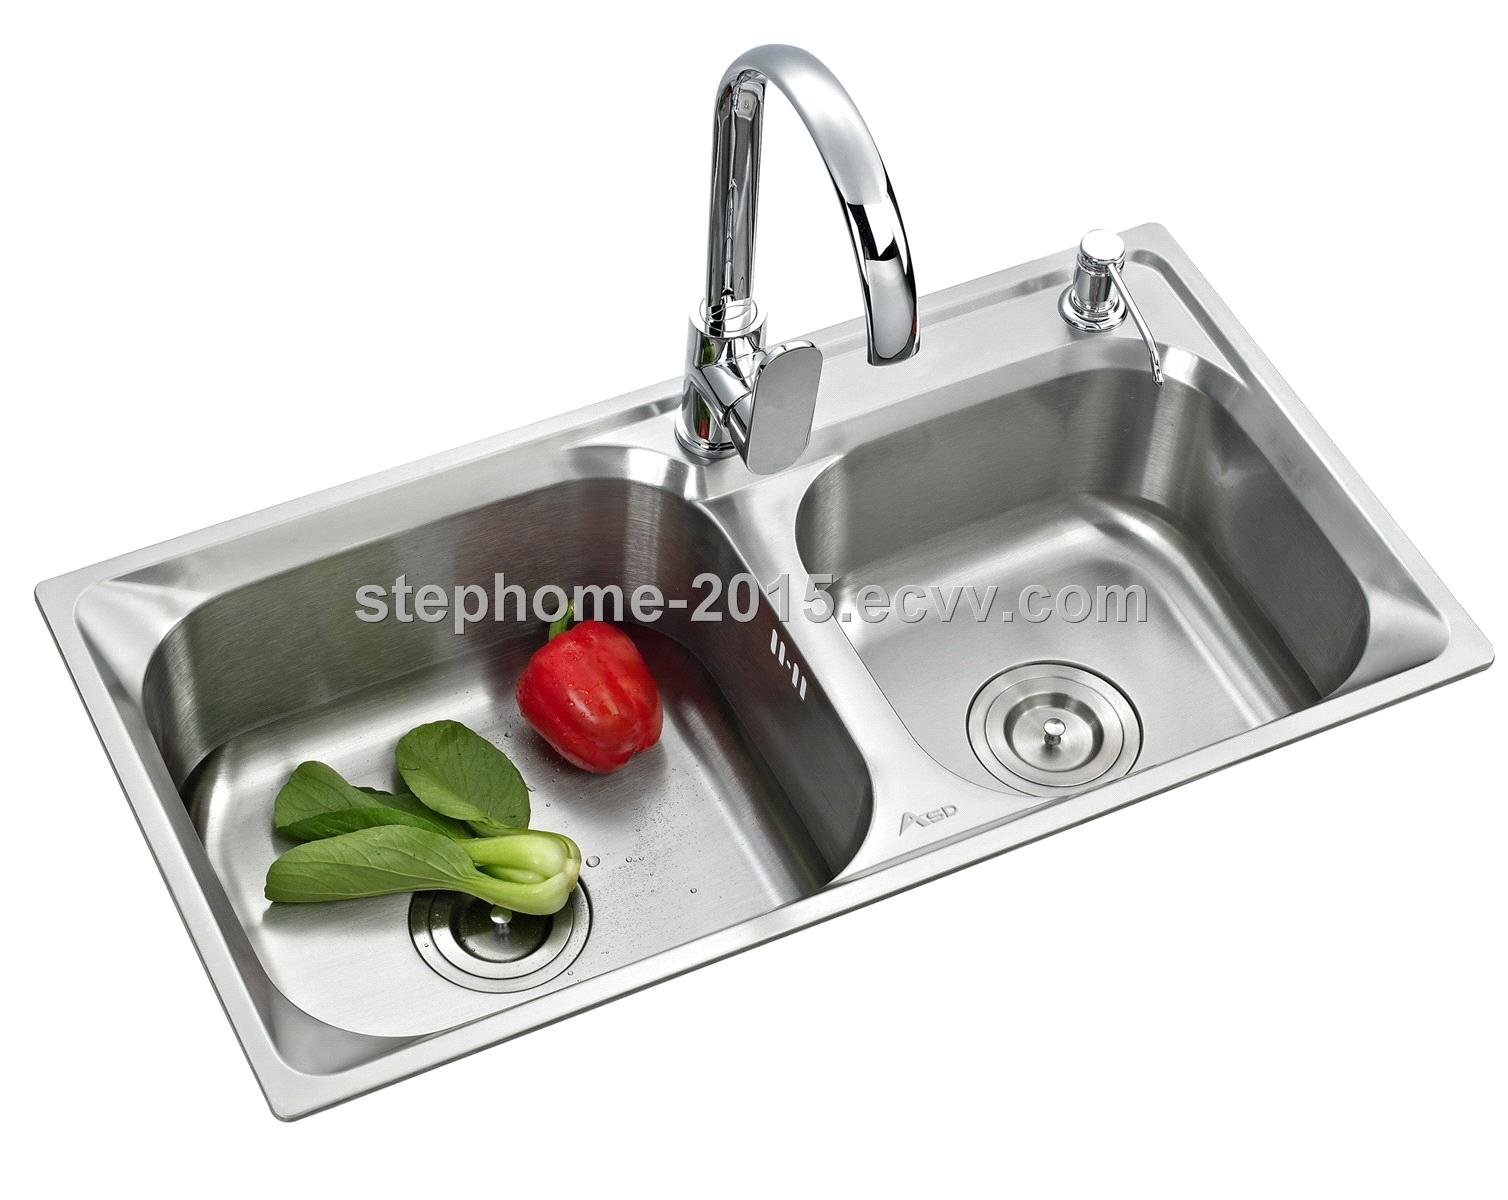 Double Bowls Stainless Steel Kitchen Sink with Good designd(Model no.:7842A)